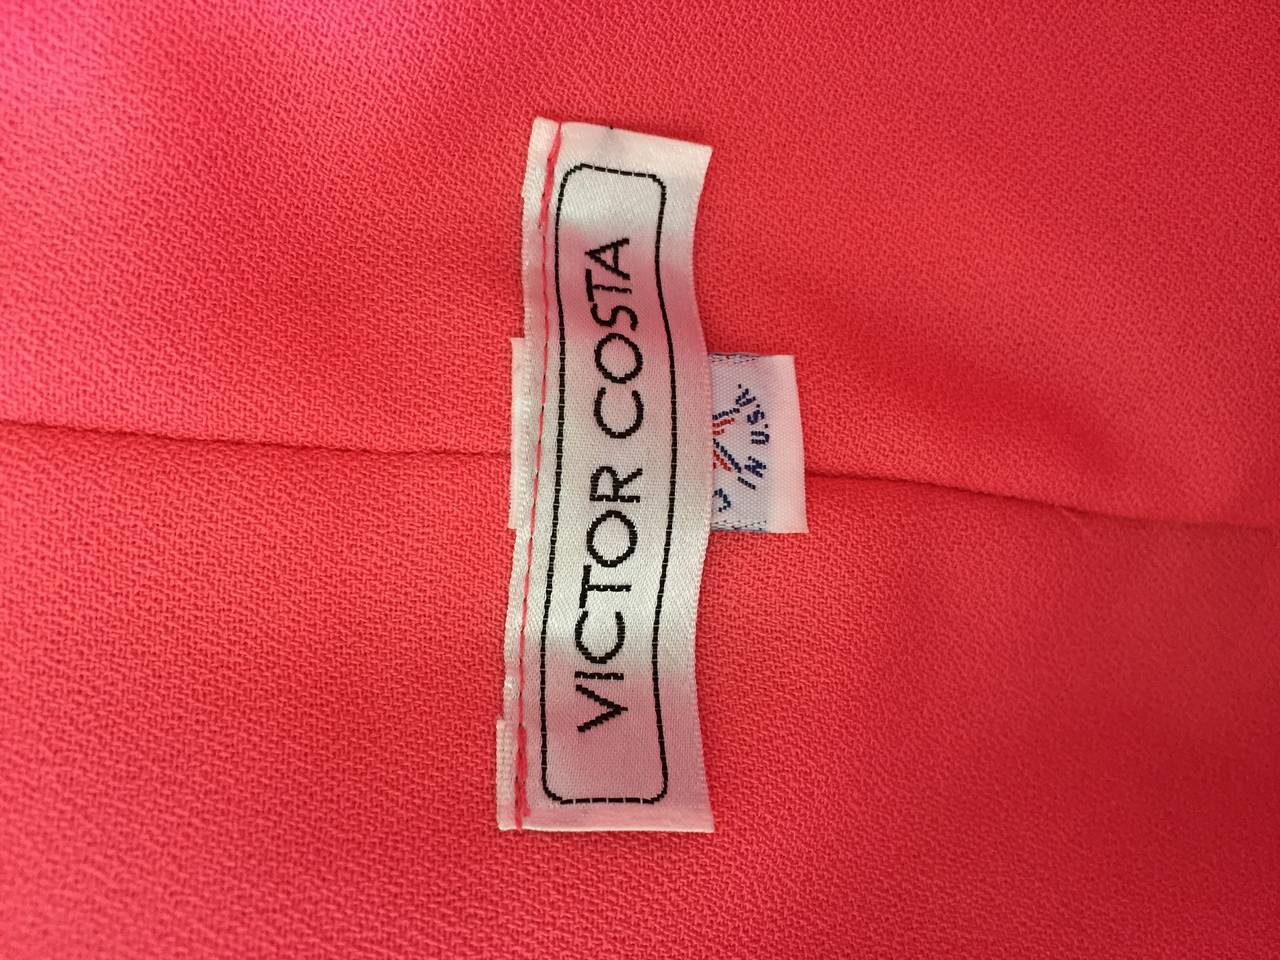 Victor Costa Coral Pink Strapless Flowy Knotted Vintage Cocktail Dress Size 8 10 10